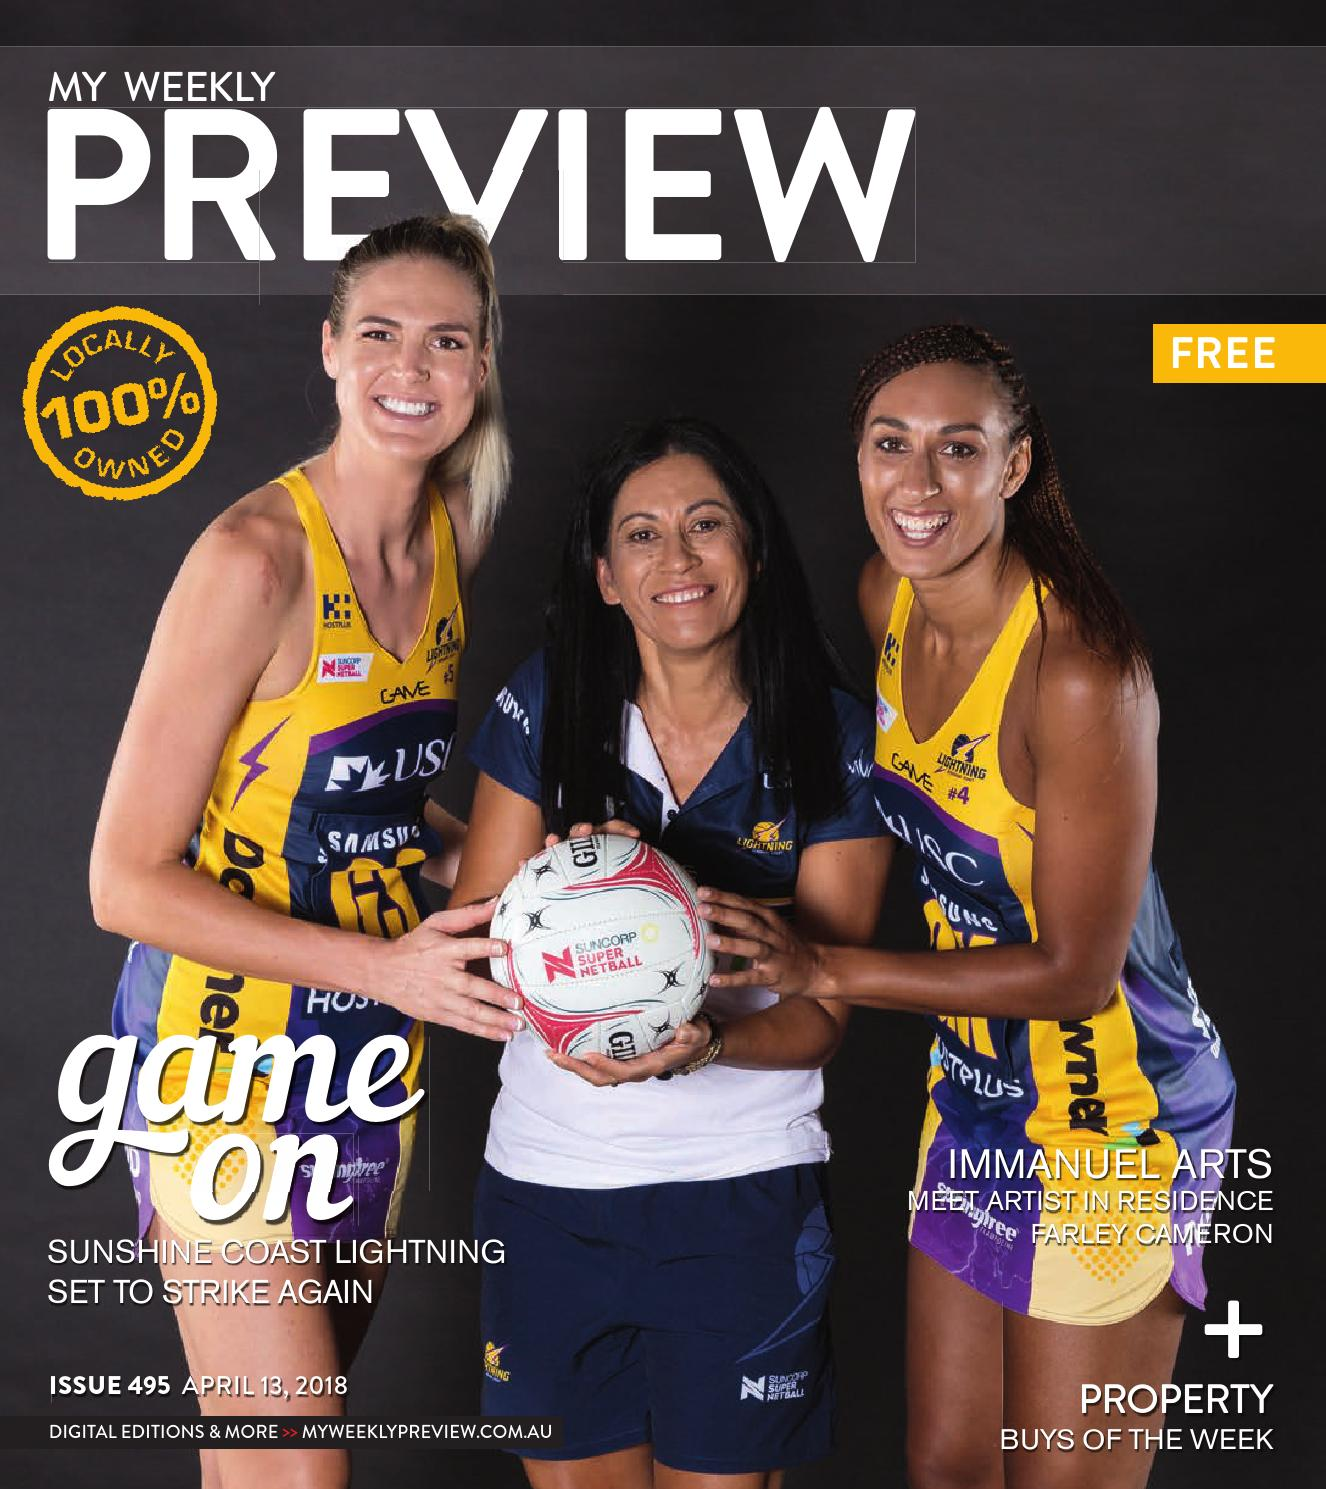 My Weekly Preview Issue 495 by My Weekly Preview - issuu 63ae991822a8a